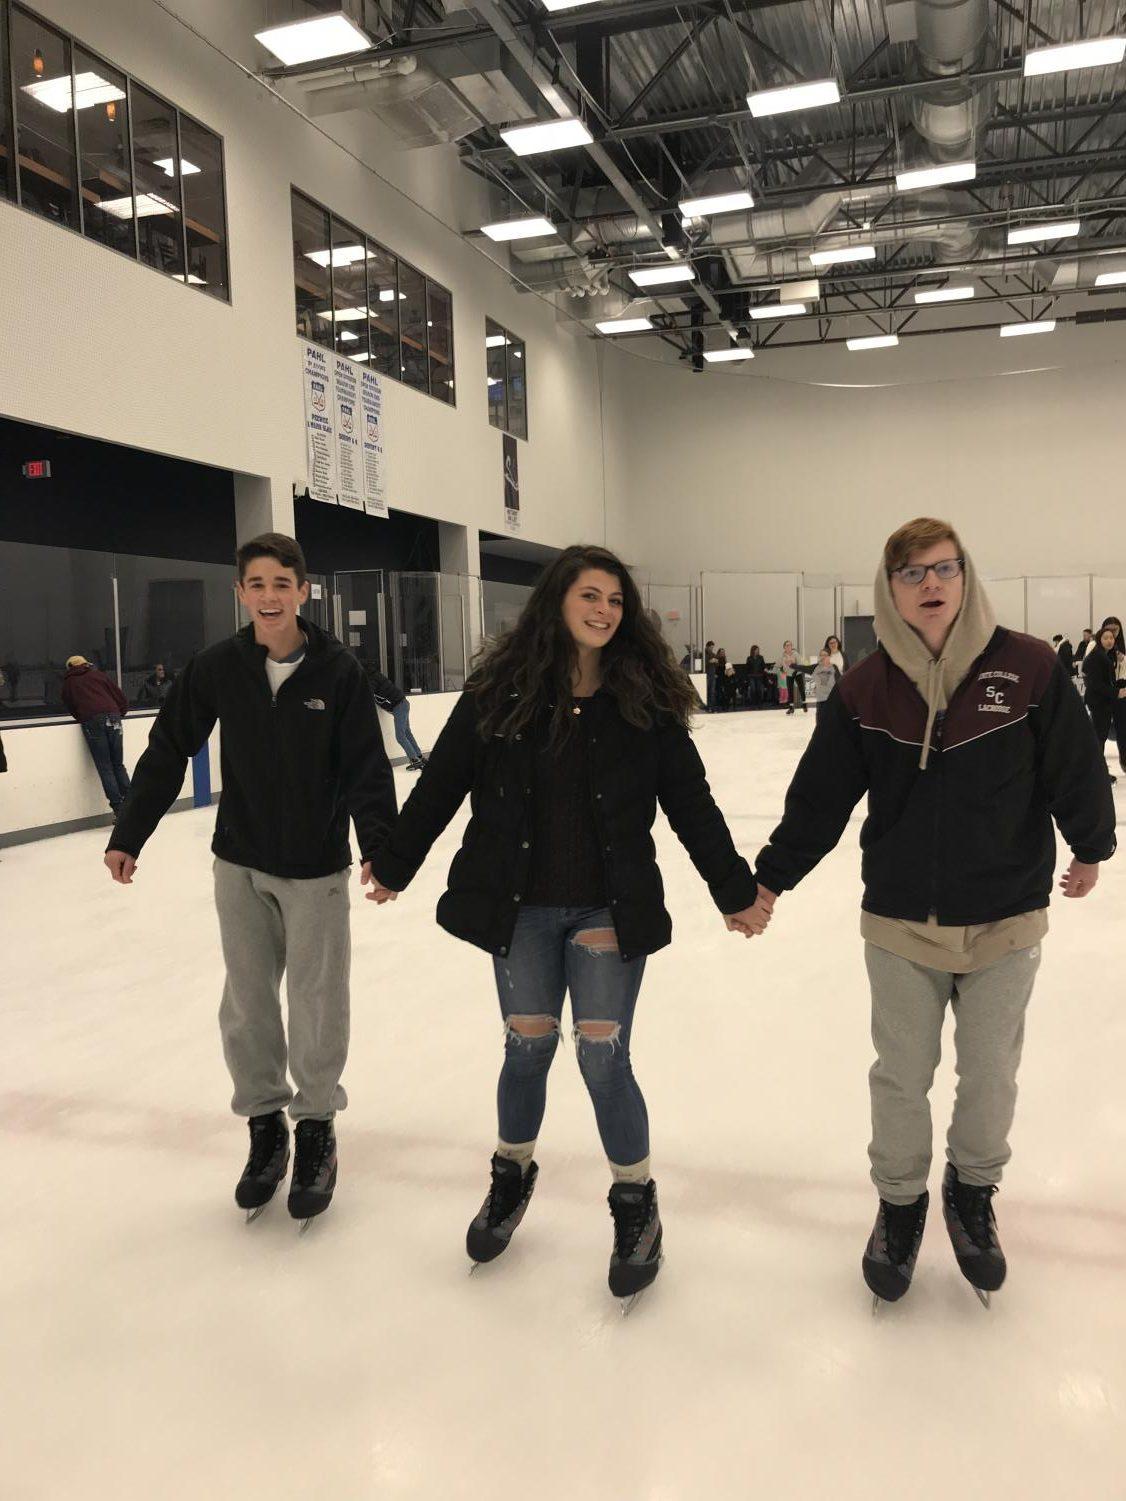 "Jack Shallenberger, Abby Kissell and Neil Porterfield, seniors, ice skating at Pegula Ice Arena during public skating on Saturday, December 16th. ""Ice skating really brings out my inner athleticism and is a great way to connect with my friends. I went skating because it is a festive and exciting activity,"" said Porterfield."